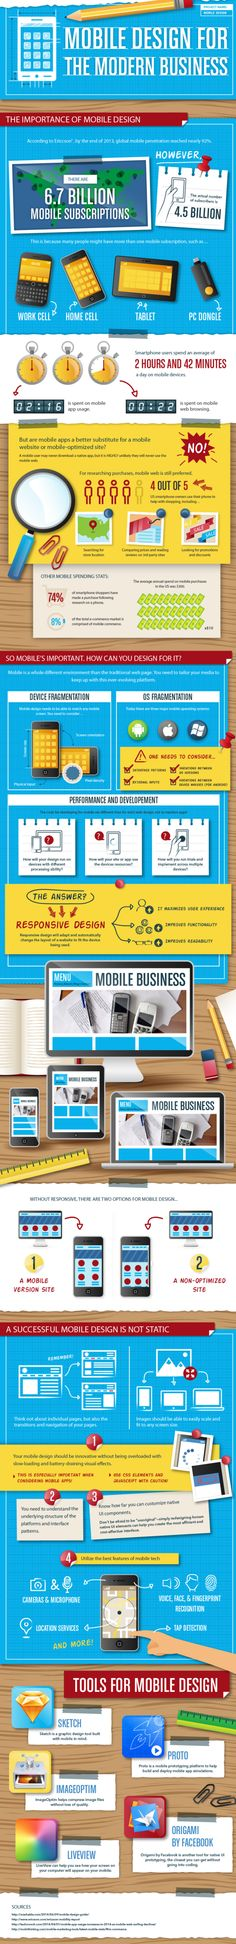 Tools And Tips For Mobile Responsive Design [Infographic]